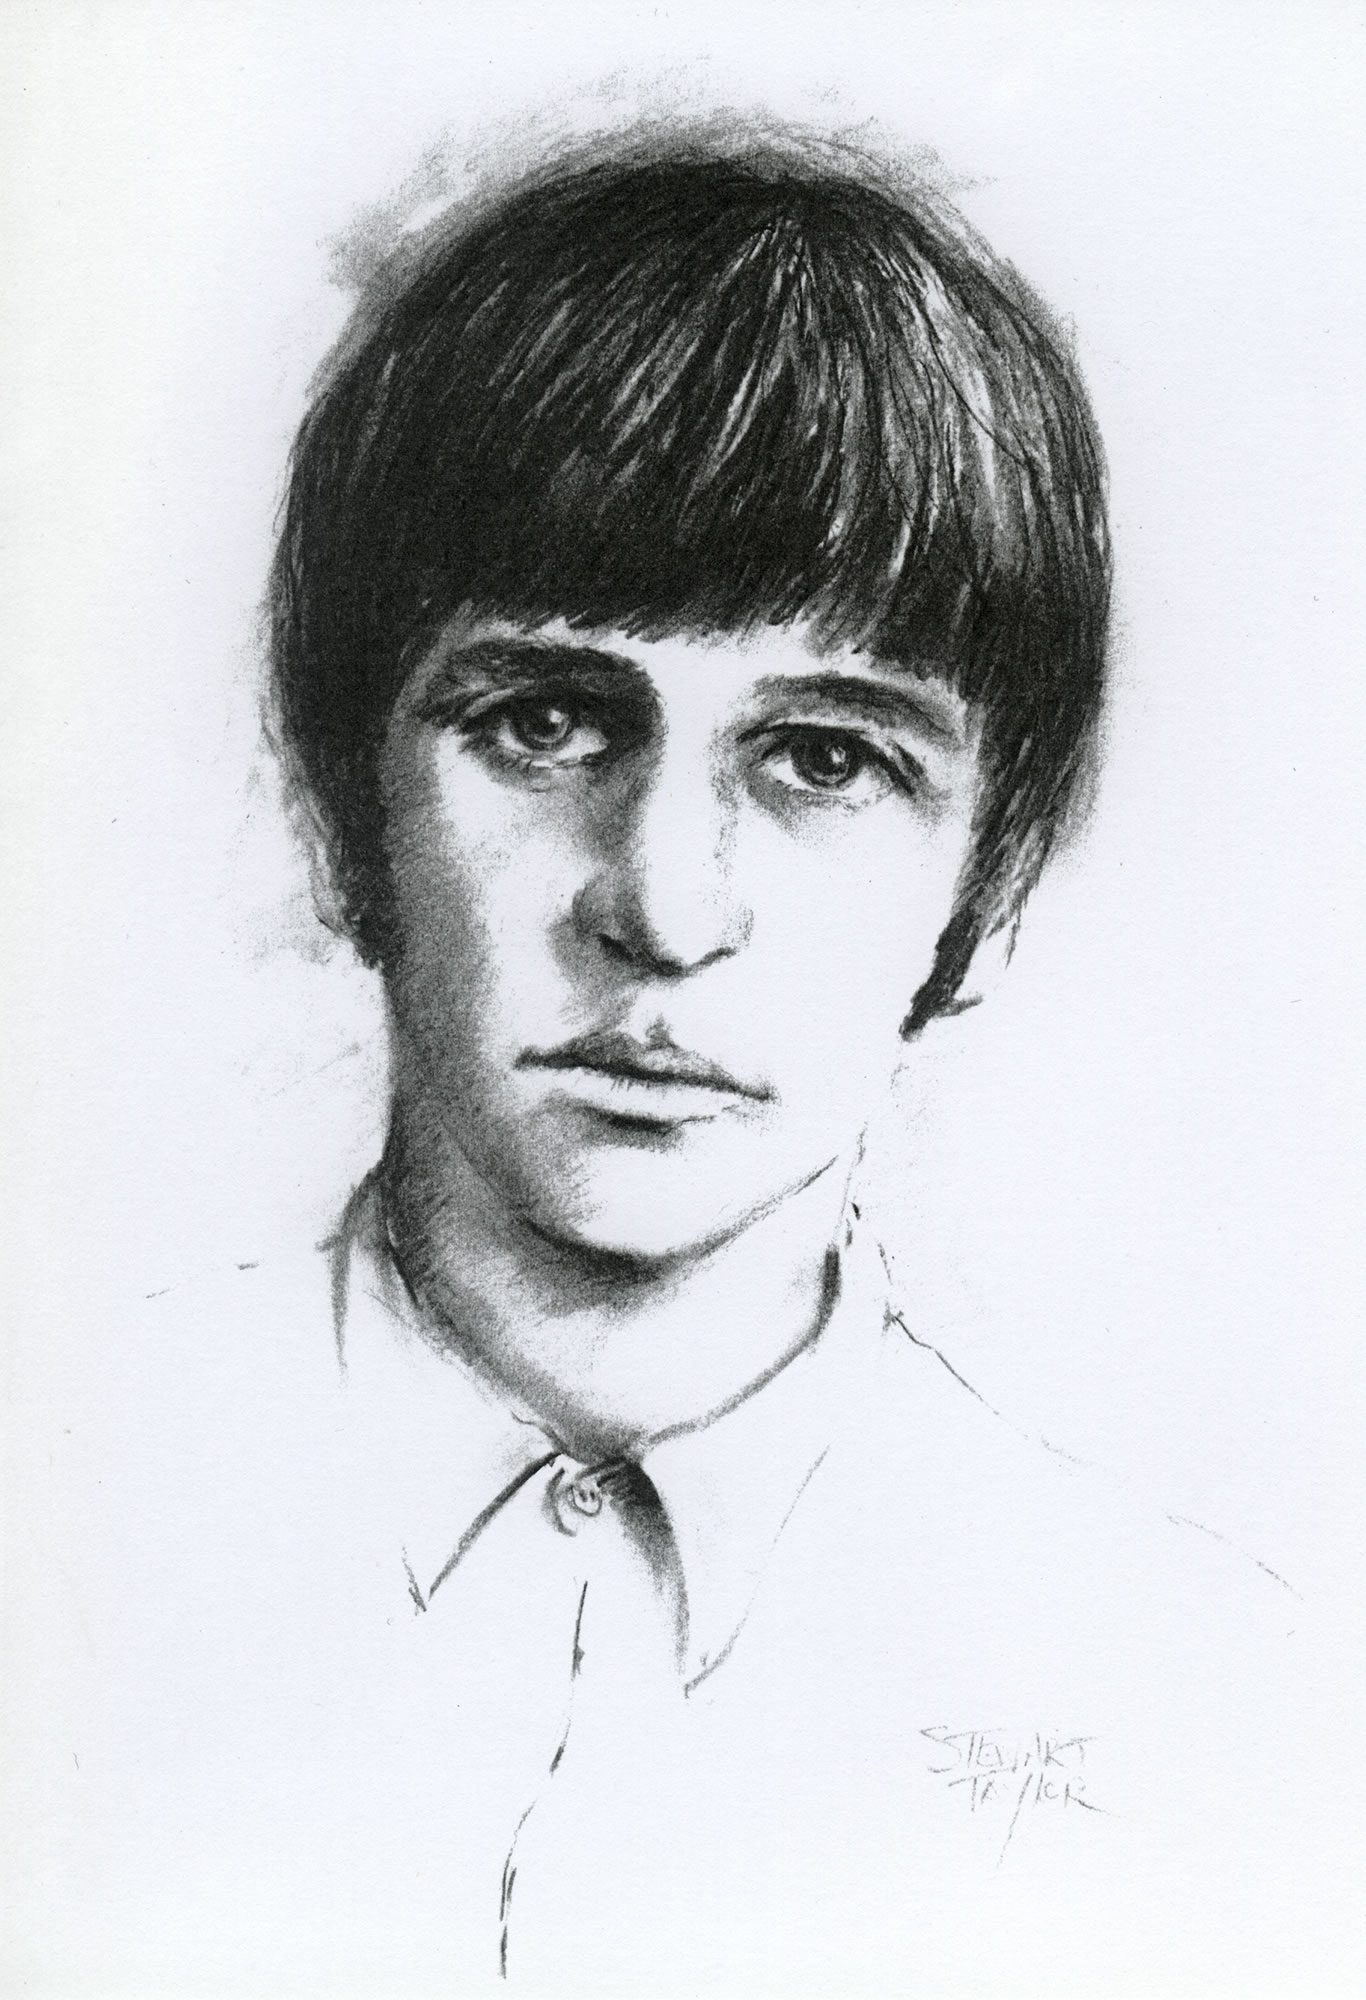 Charcoal portrait of Ringo Starr of the Beatles by East Yorkshire artist Stewart Taylor